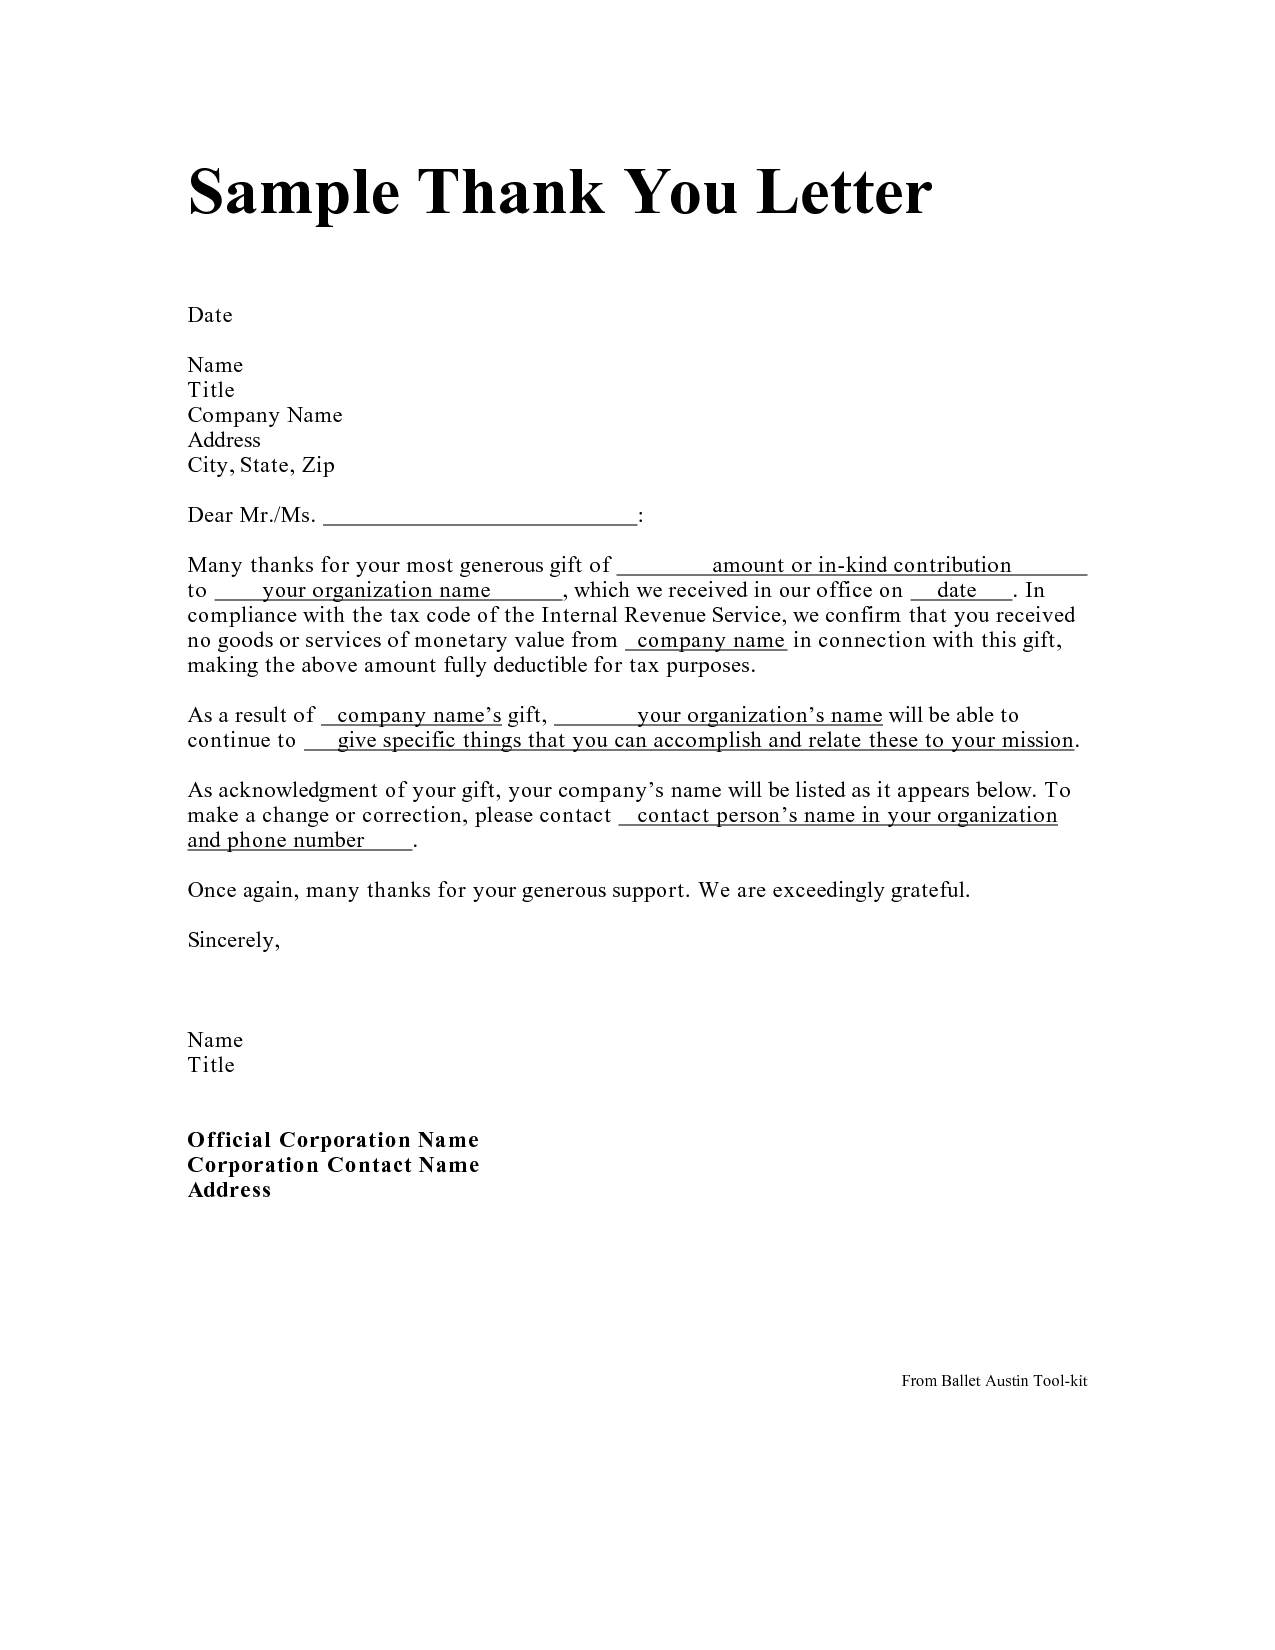 Car Donation Letter Template - Personal Thank You Letter Personal Thank You Letter Samples